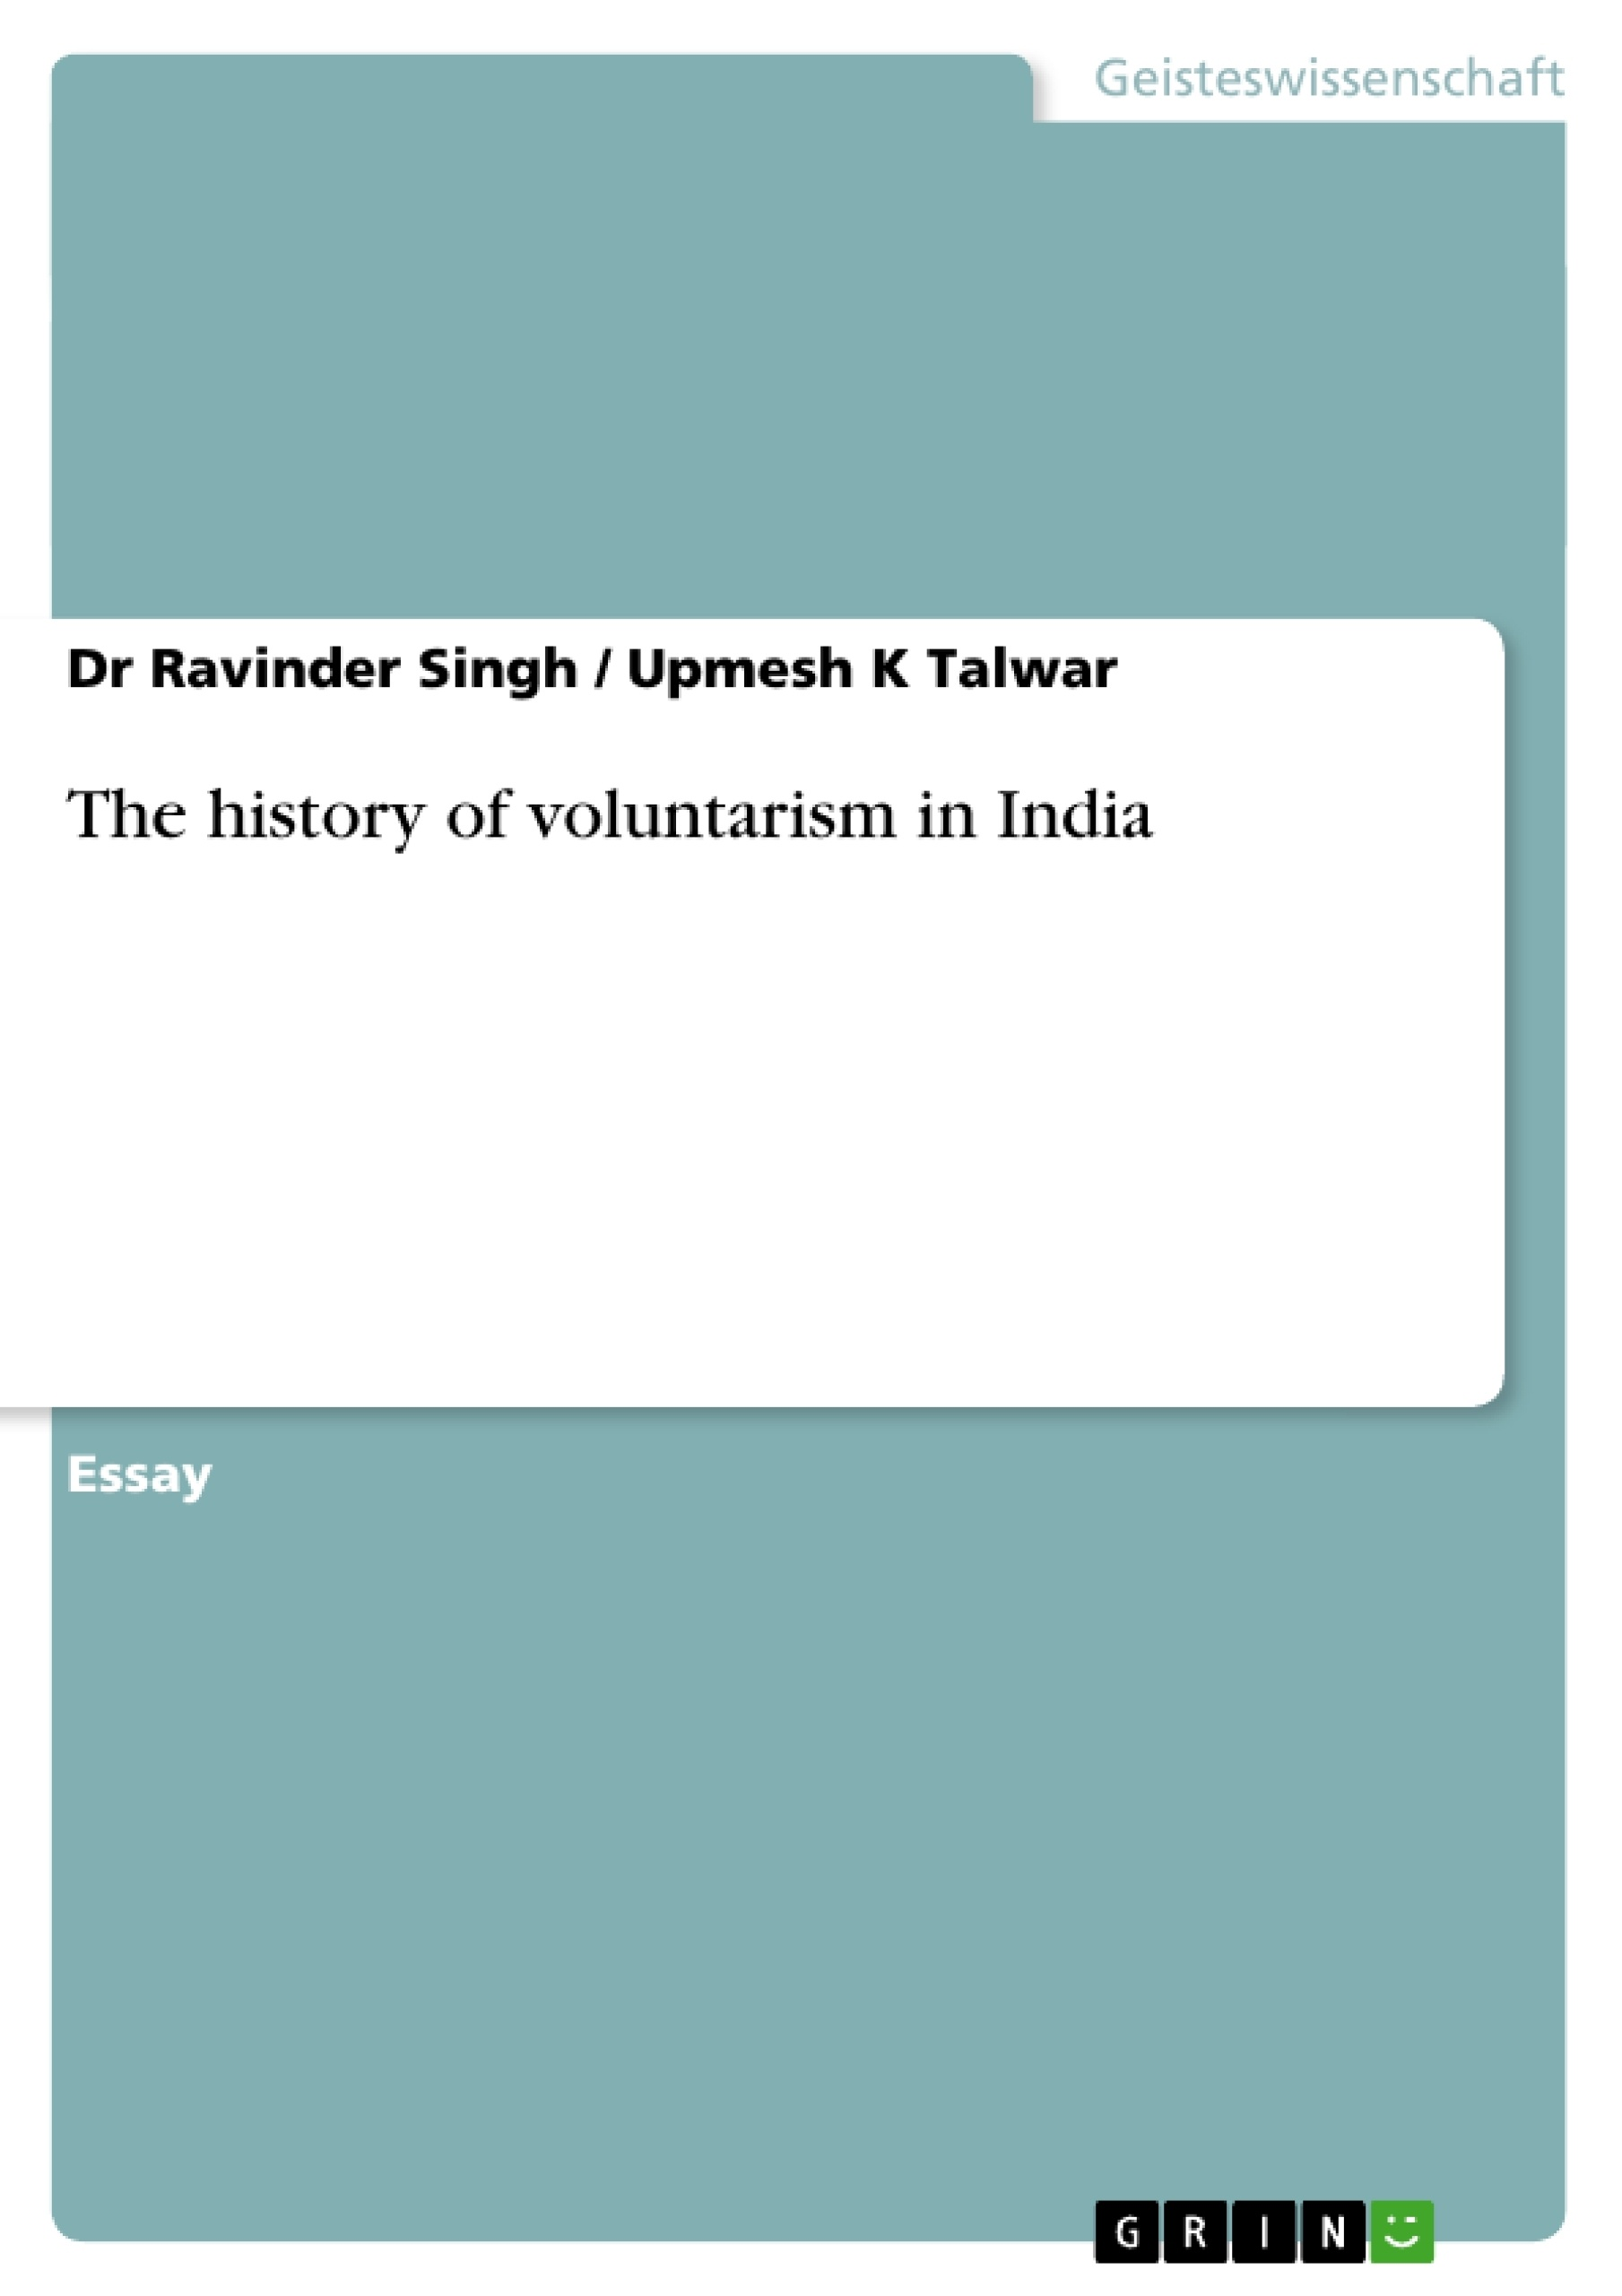 GRIN - The history of voluntarism in India